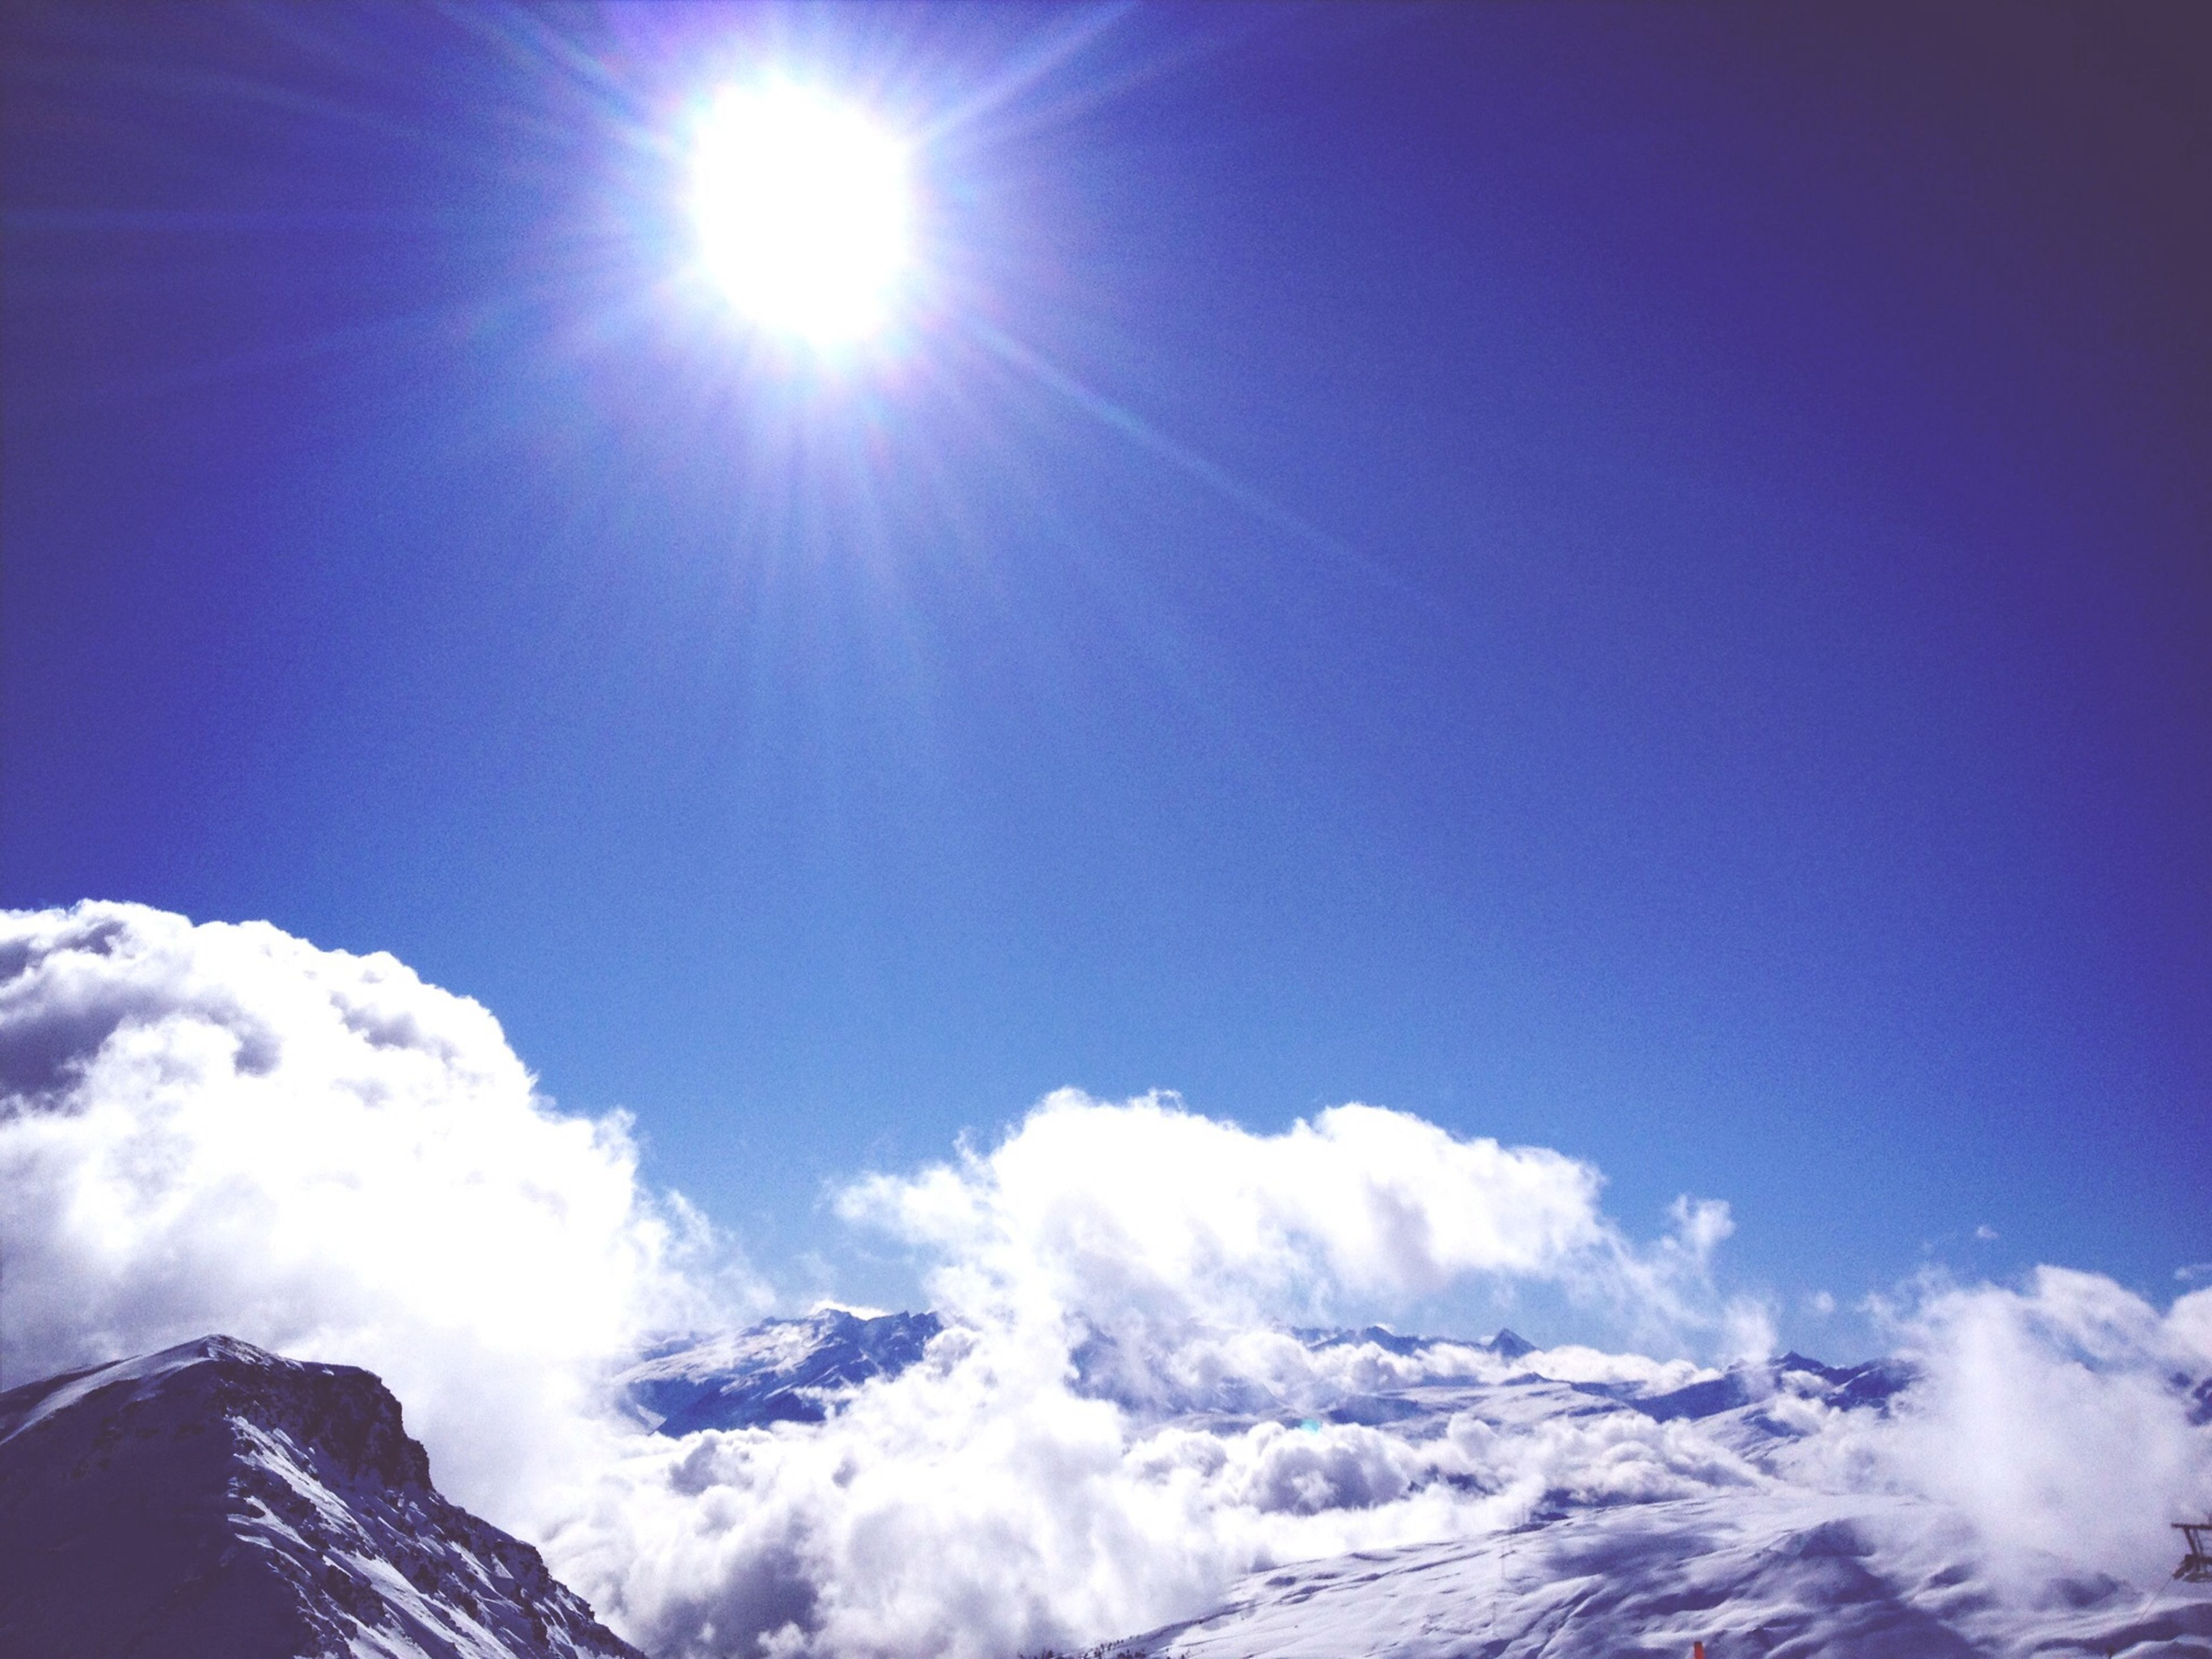 sun, sunbeam, tranquility, sunlight, beauty in nature, low angle view, scenics, tranquil scene, sky, blue, snow, mountain, nature, lens flare, cold temperature, winter, sunny, bright, idyllic, day